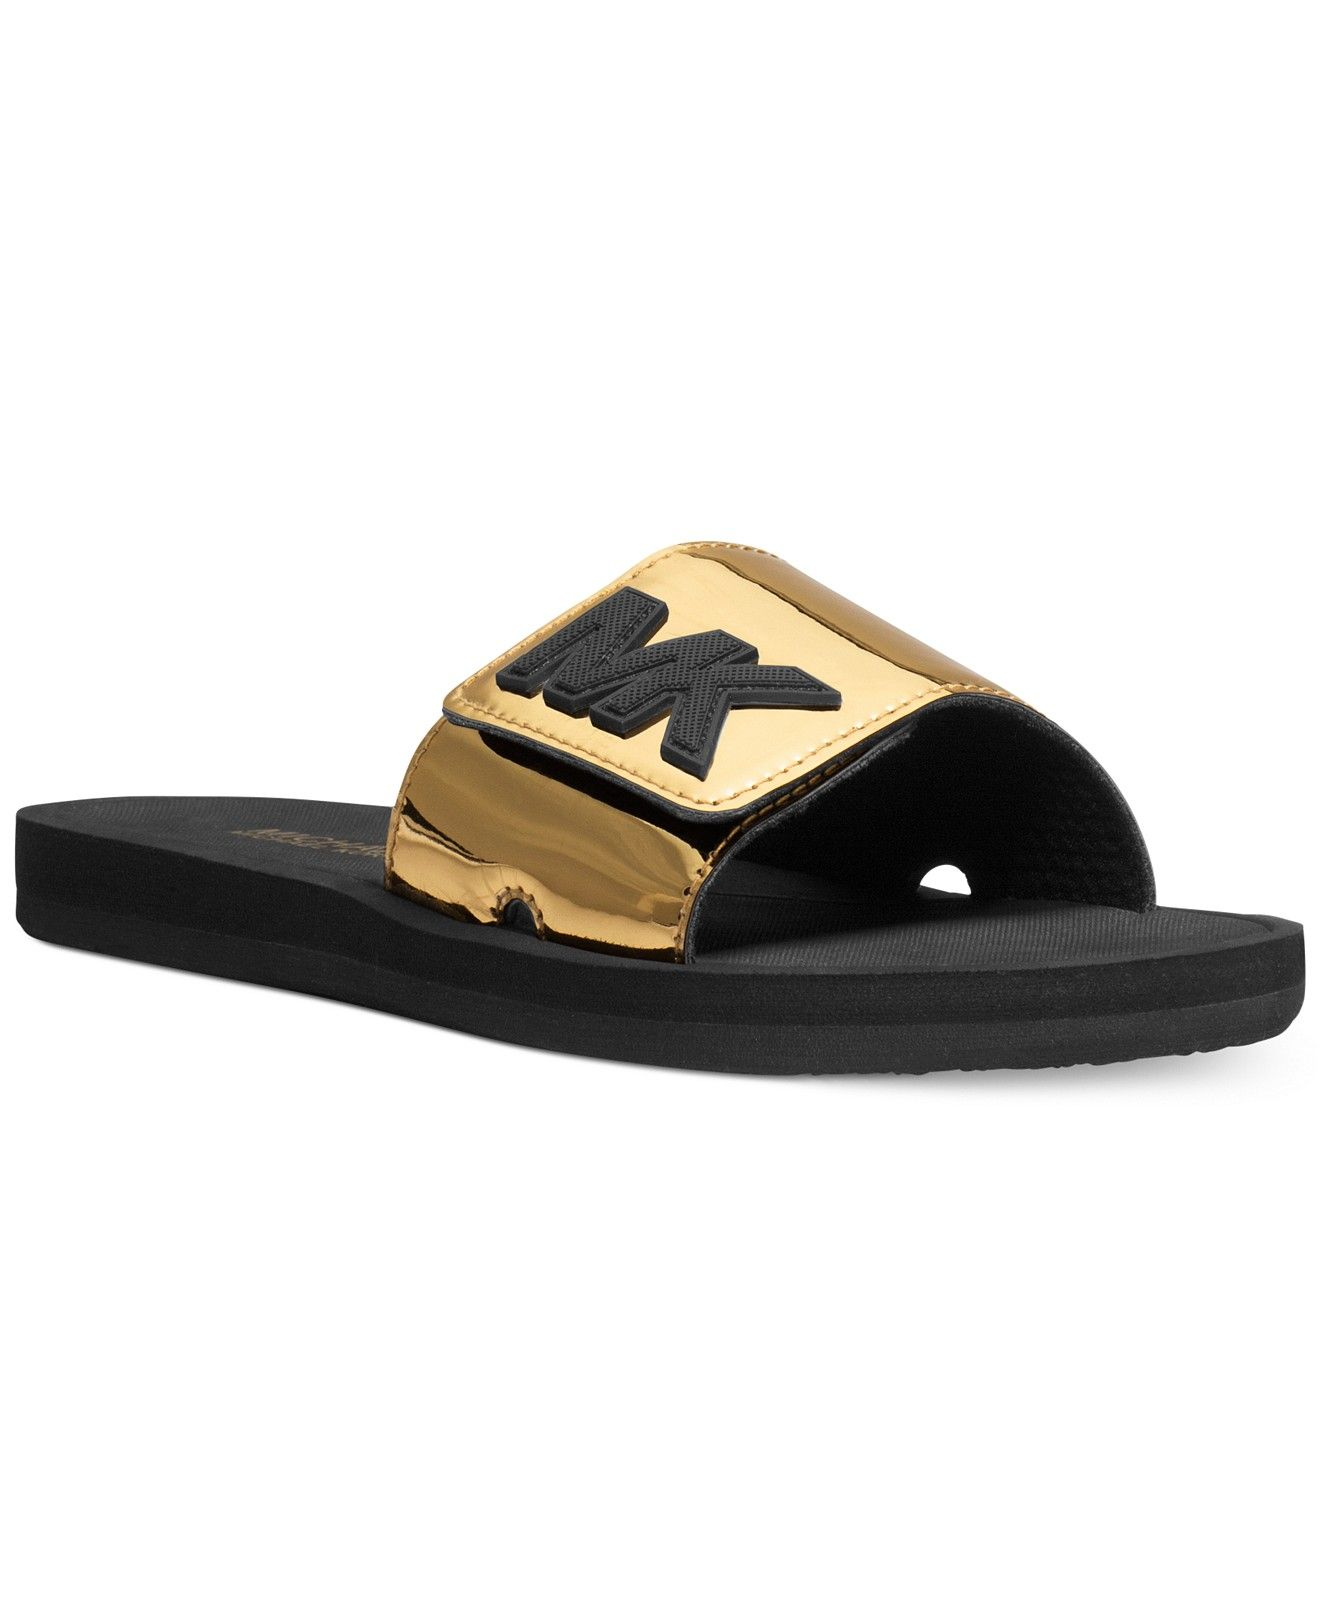 27f9b9d401e1 MICHAEL Michael Kors MK Shower Slide Sandals - Sandals - Shoes - Macy s